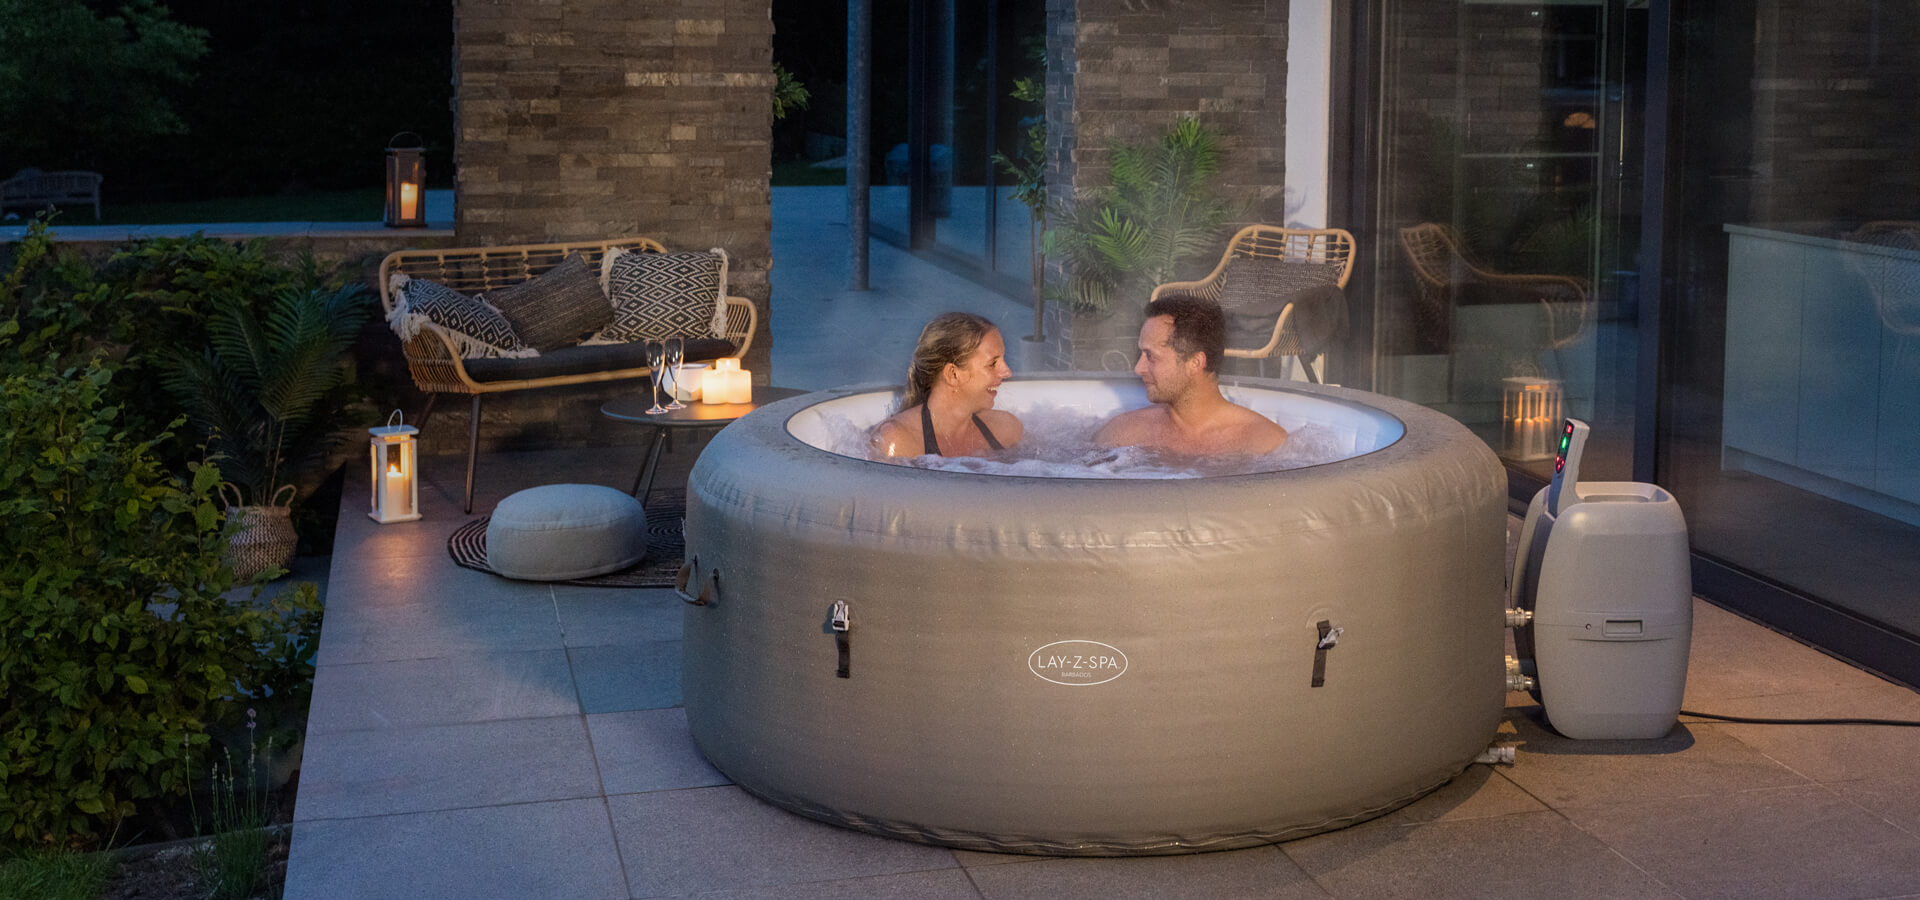 Lay-Z-Spa UK inflatable hot tubs